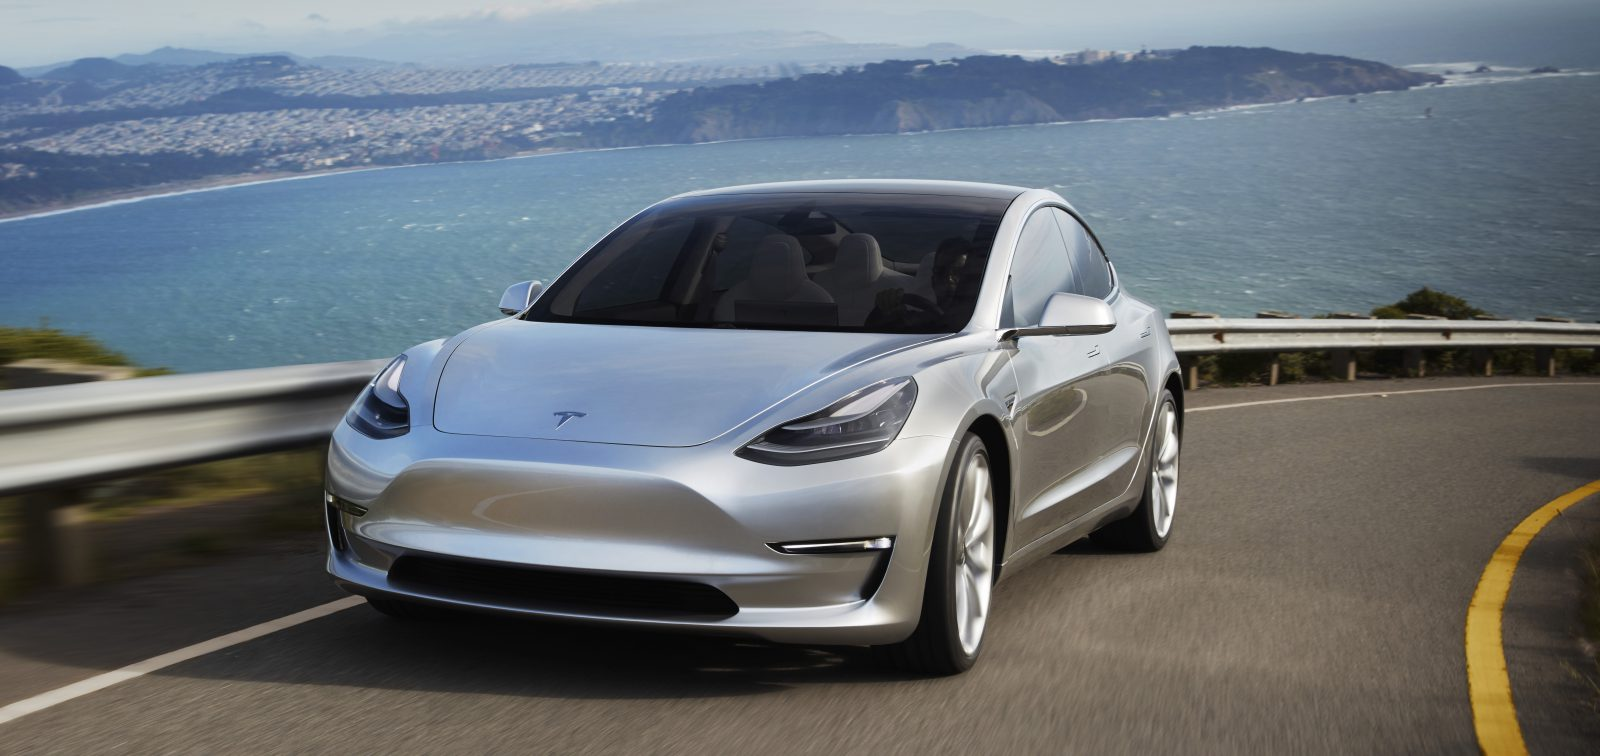 tesla-model-3-silver-prototype-promo-shot-headlands